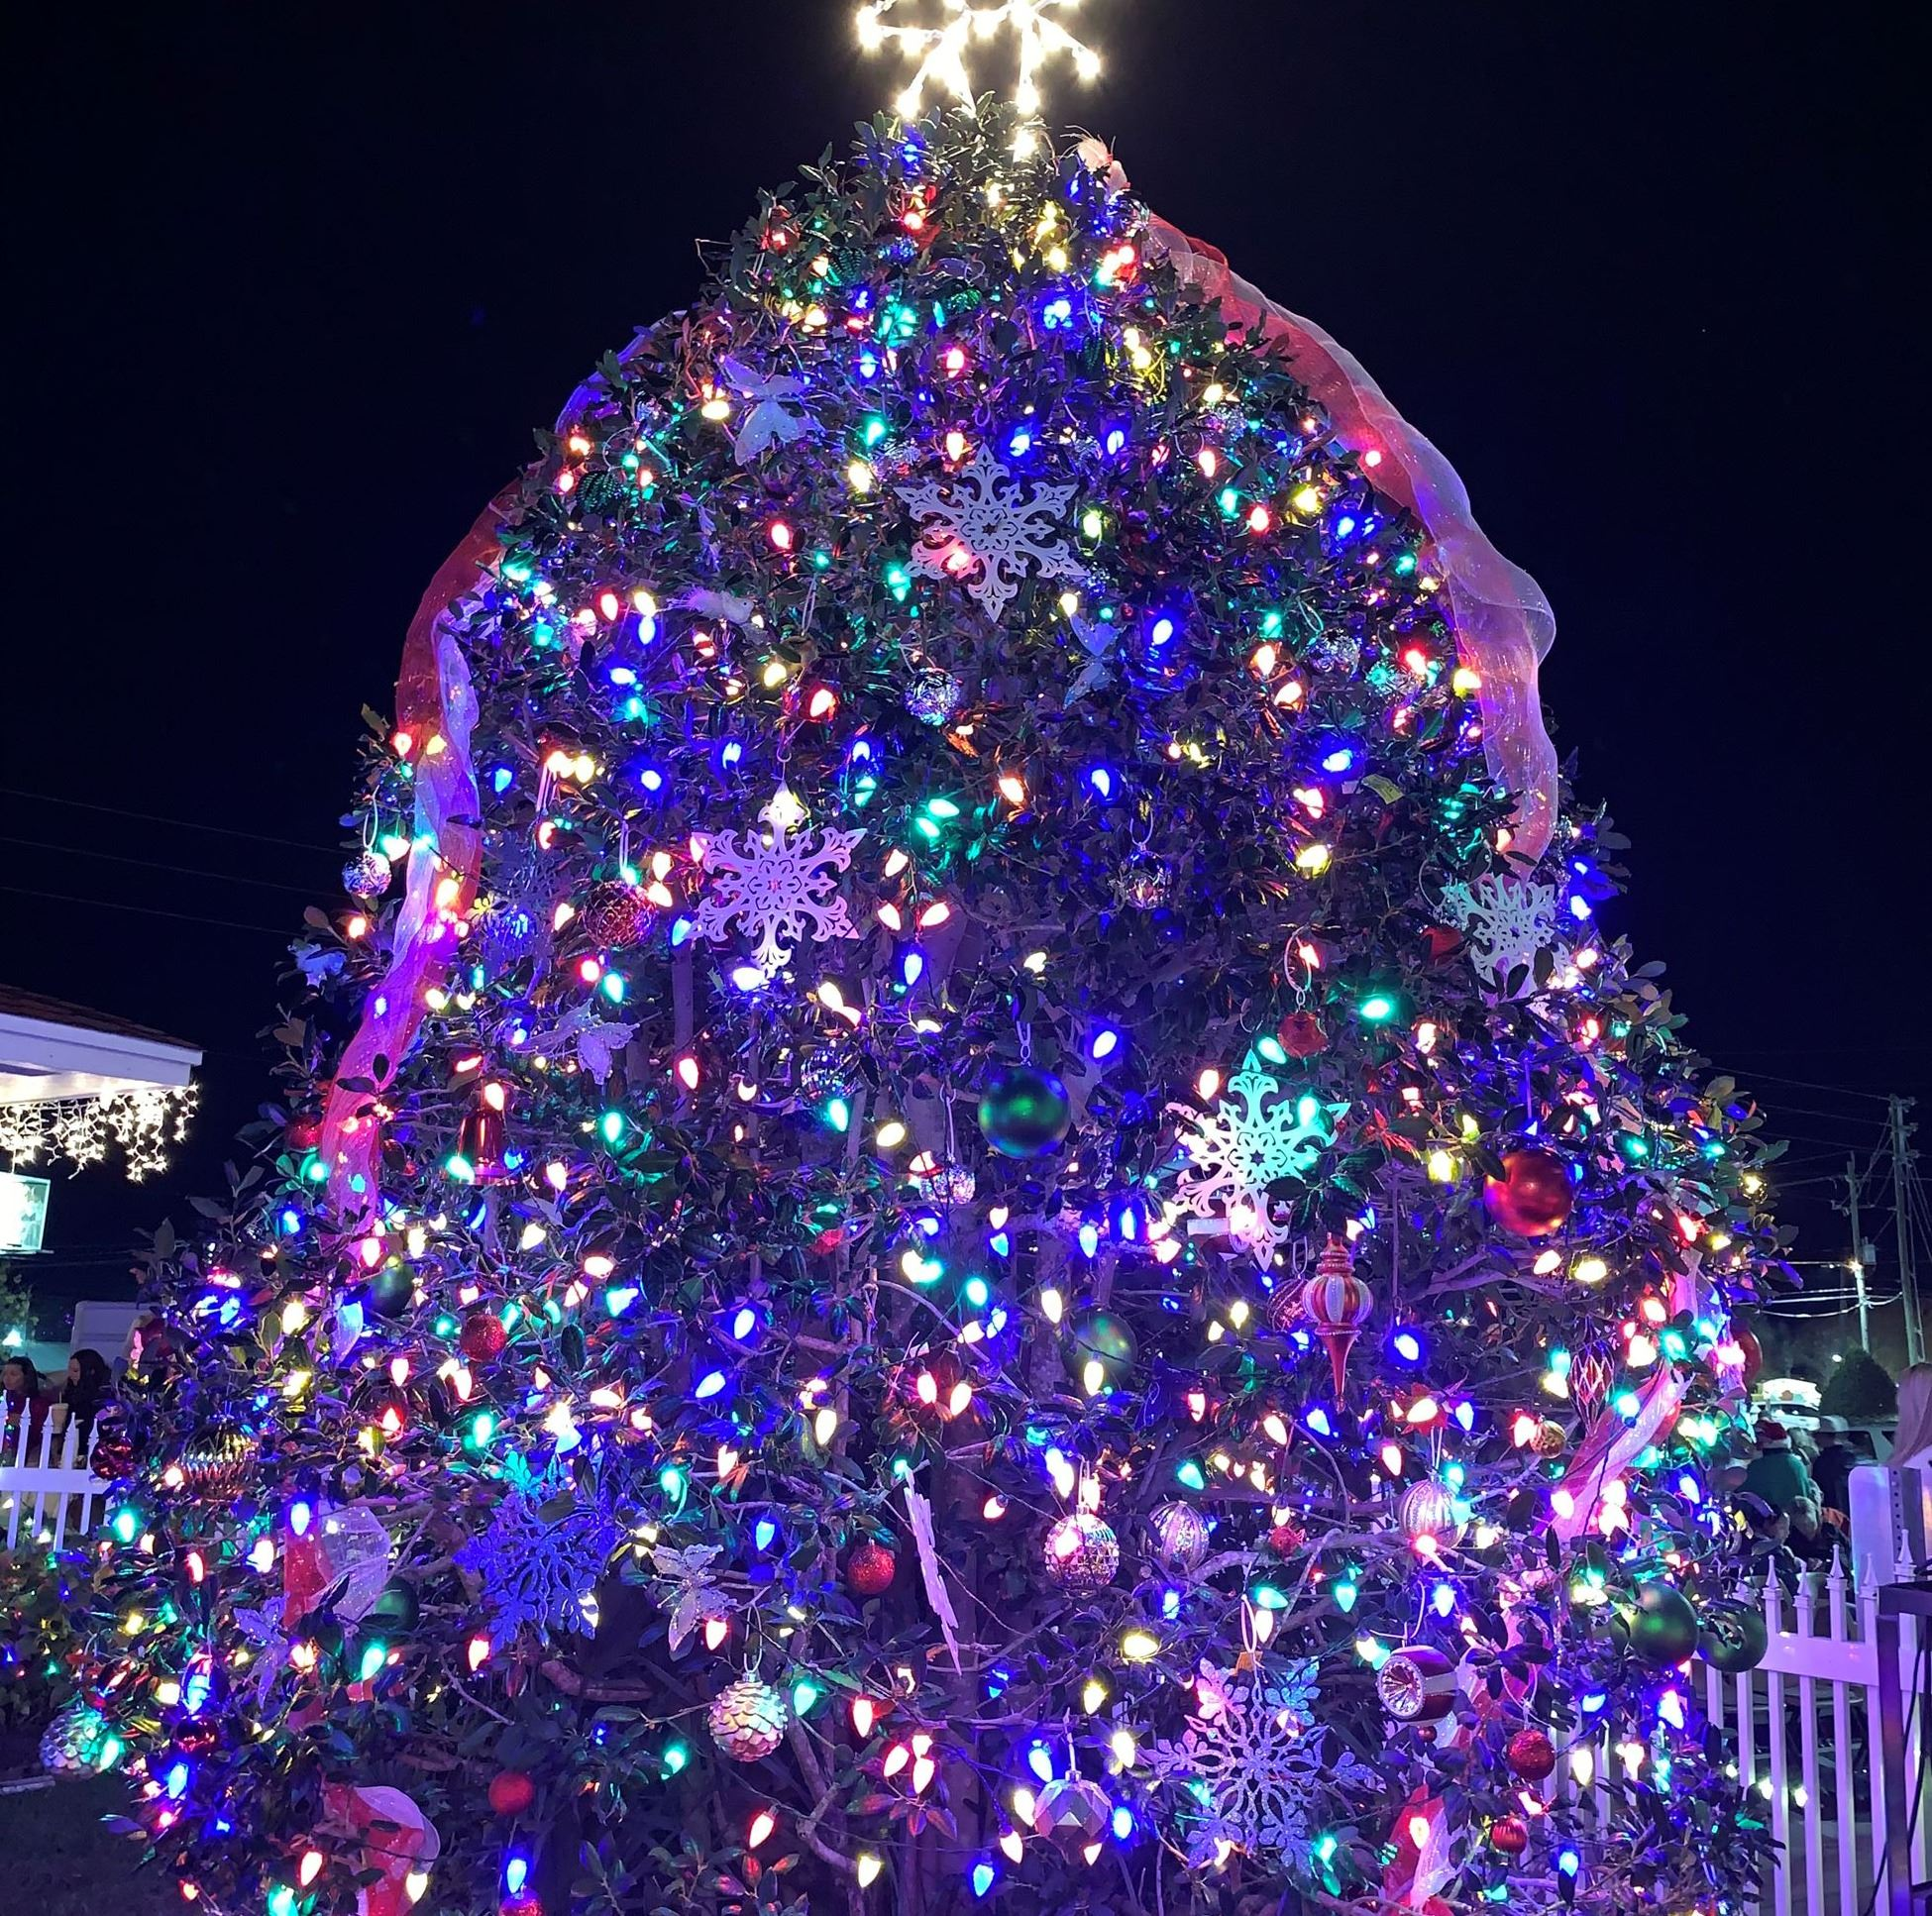 City of Destin Christmas Tree Lit Up at Community Center